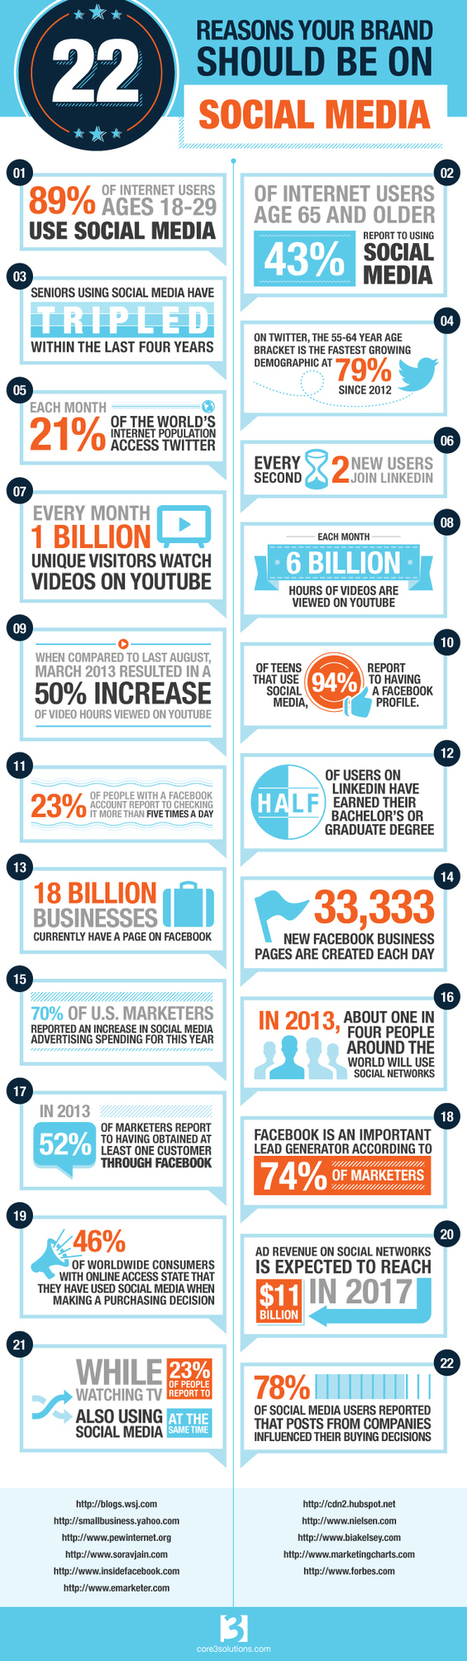 22 Reasons Your Brand Should be on Social Media Infographic | GoGo Social - Grab Bag | Scoop.it